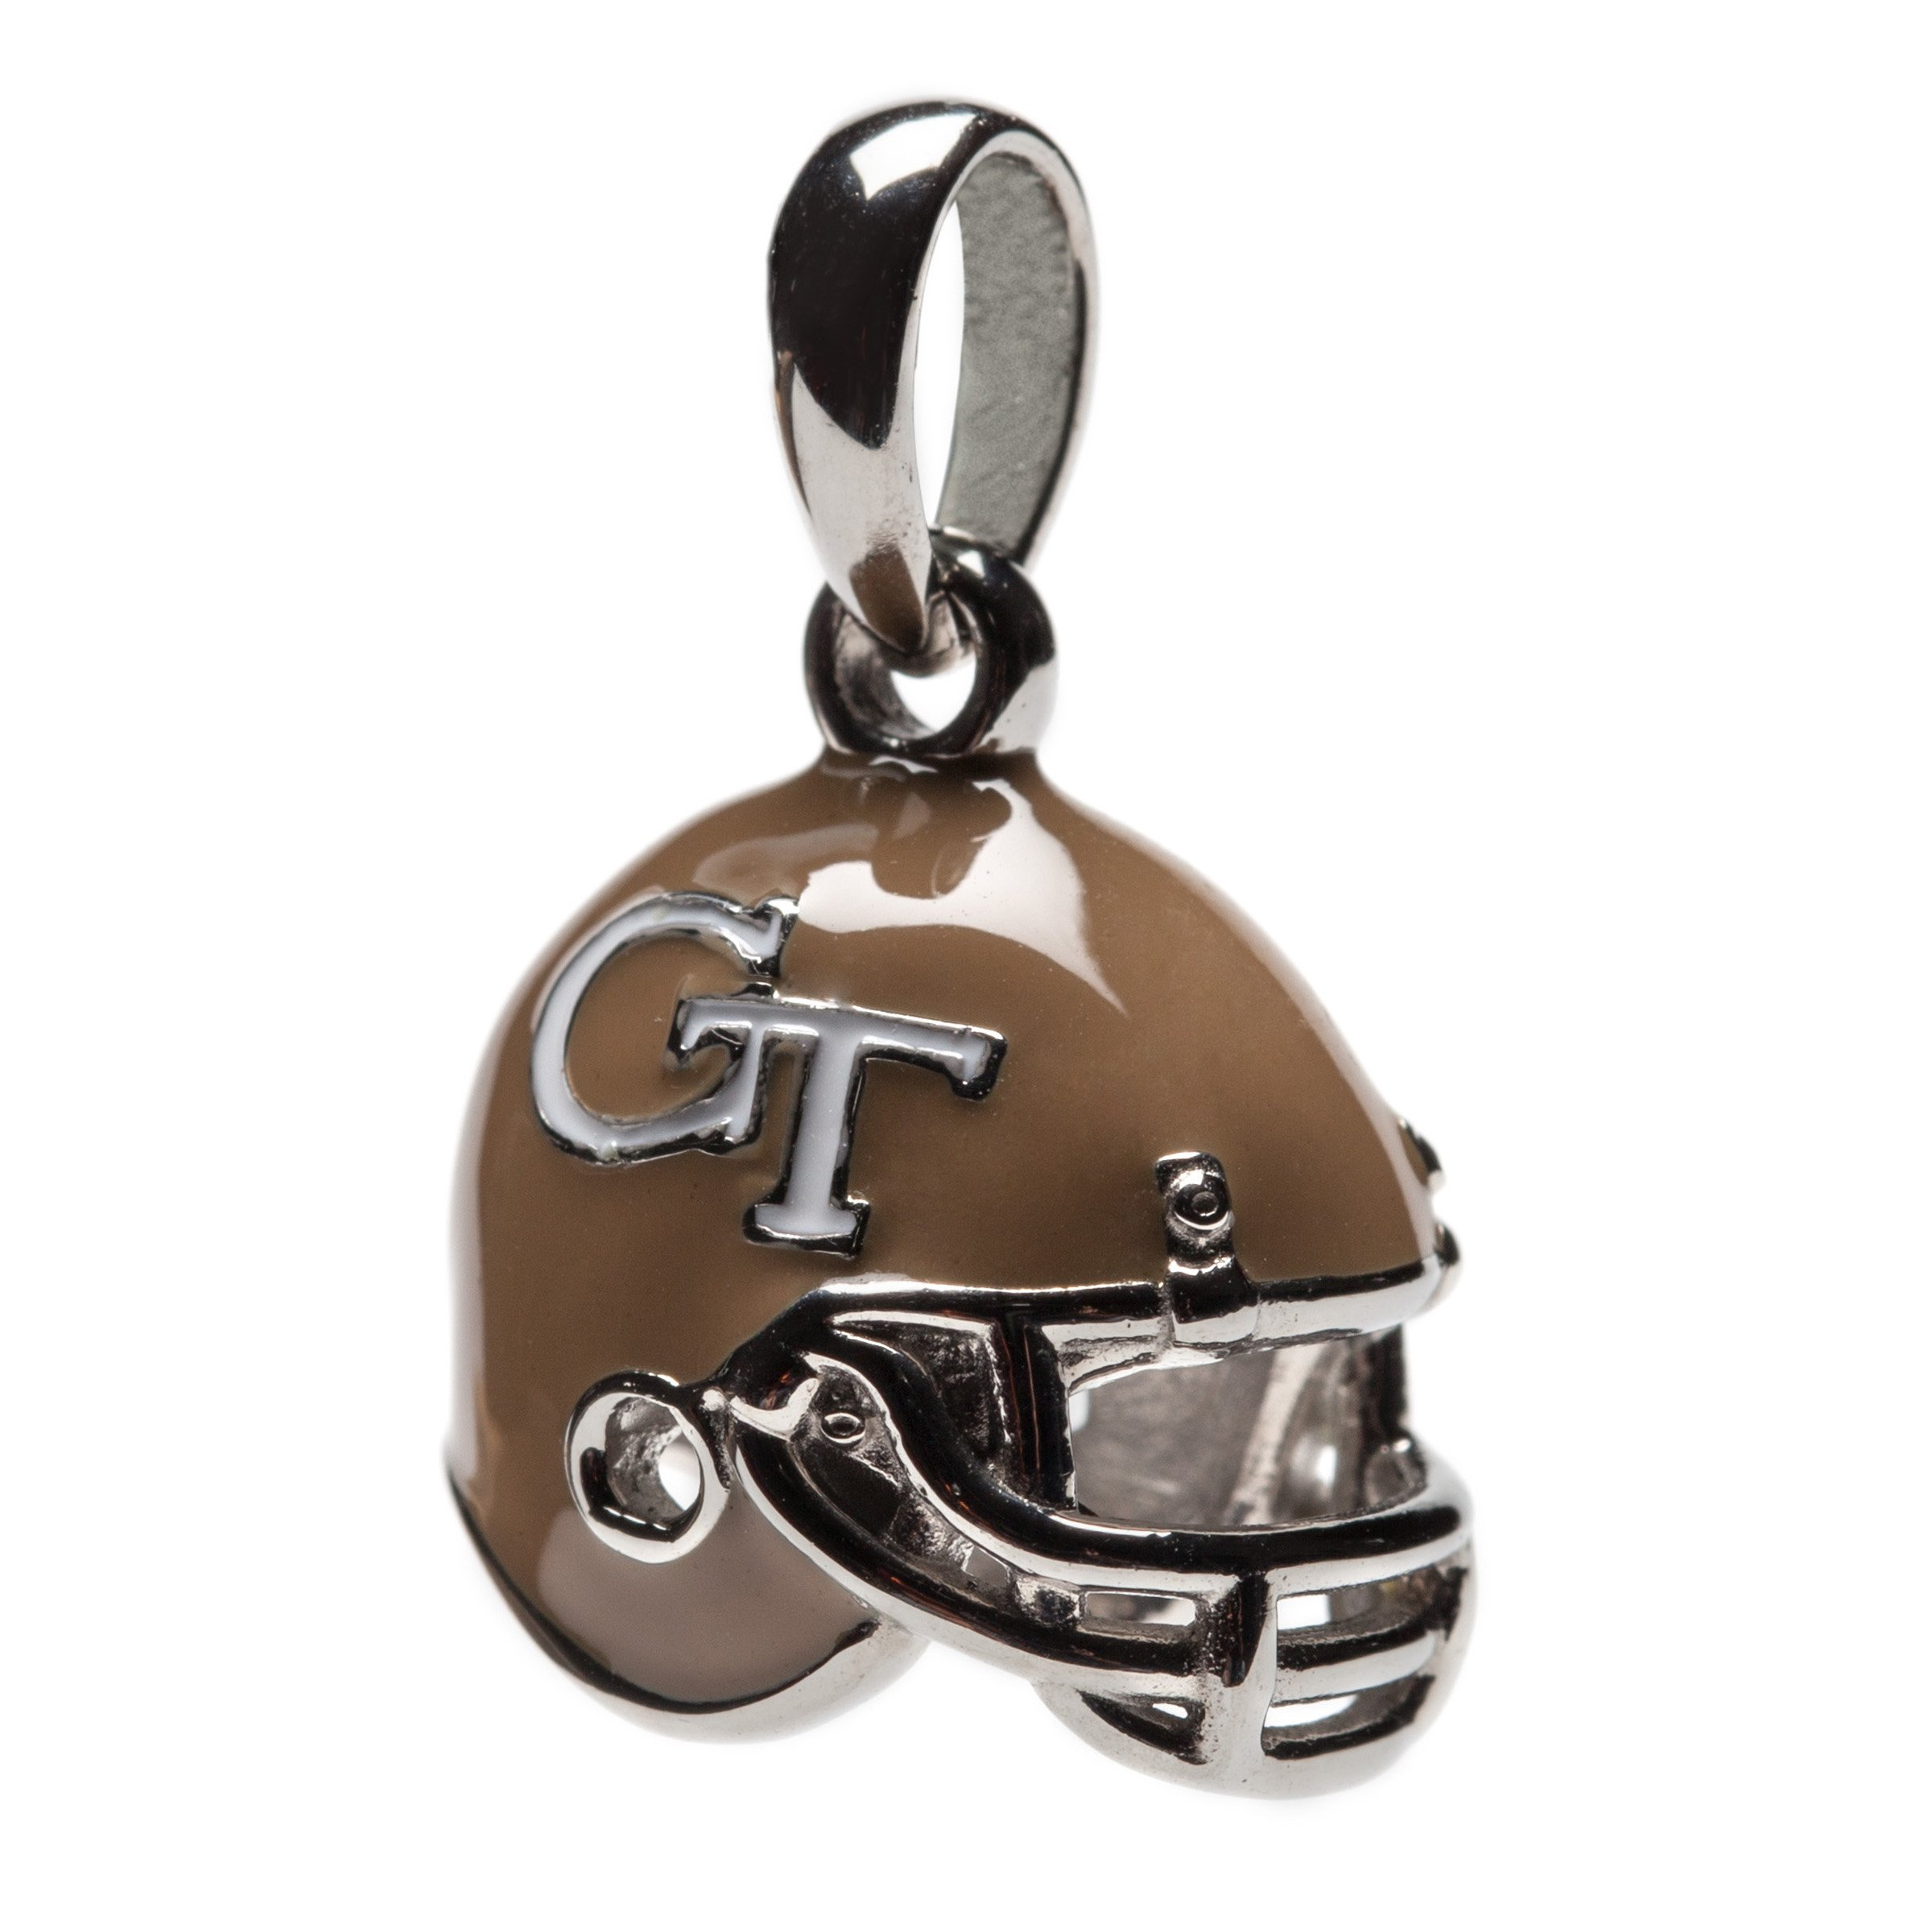 Georgia Tech Charm | GT Yellow Jackets - 3-D GT Football Helmet Charm | Officially Licensed Georgia Tech Jewelry | GT Gifts | Georgia Tech Football | Georgia Tech Ramblin Wreck | Stainless Steel by Stone Armory